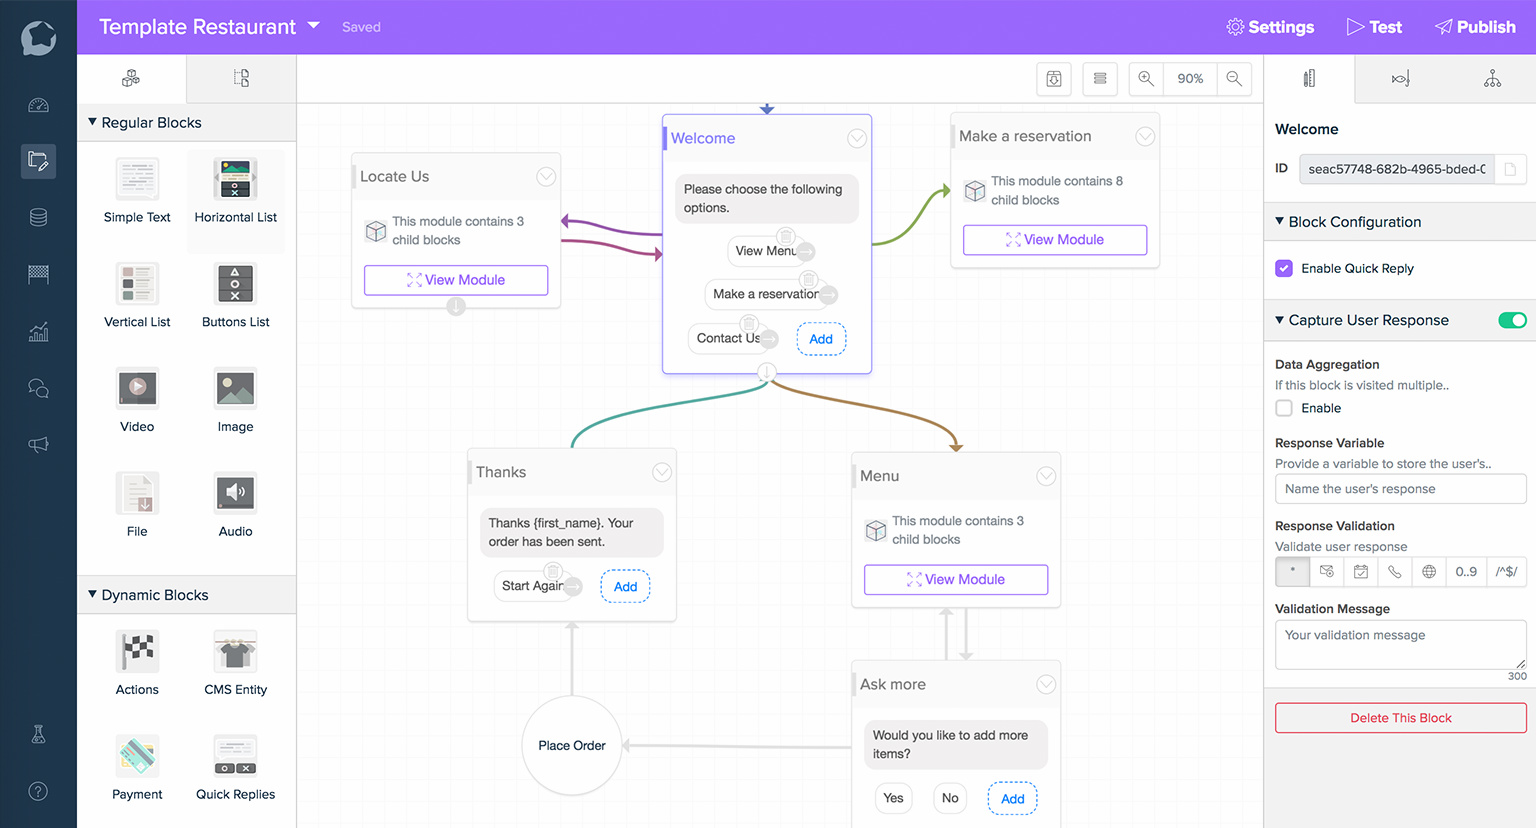 A sample chatbot flow made with BotStar, a No Code tool for making chatbots.